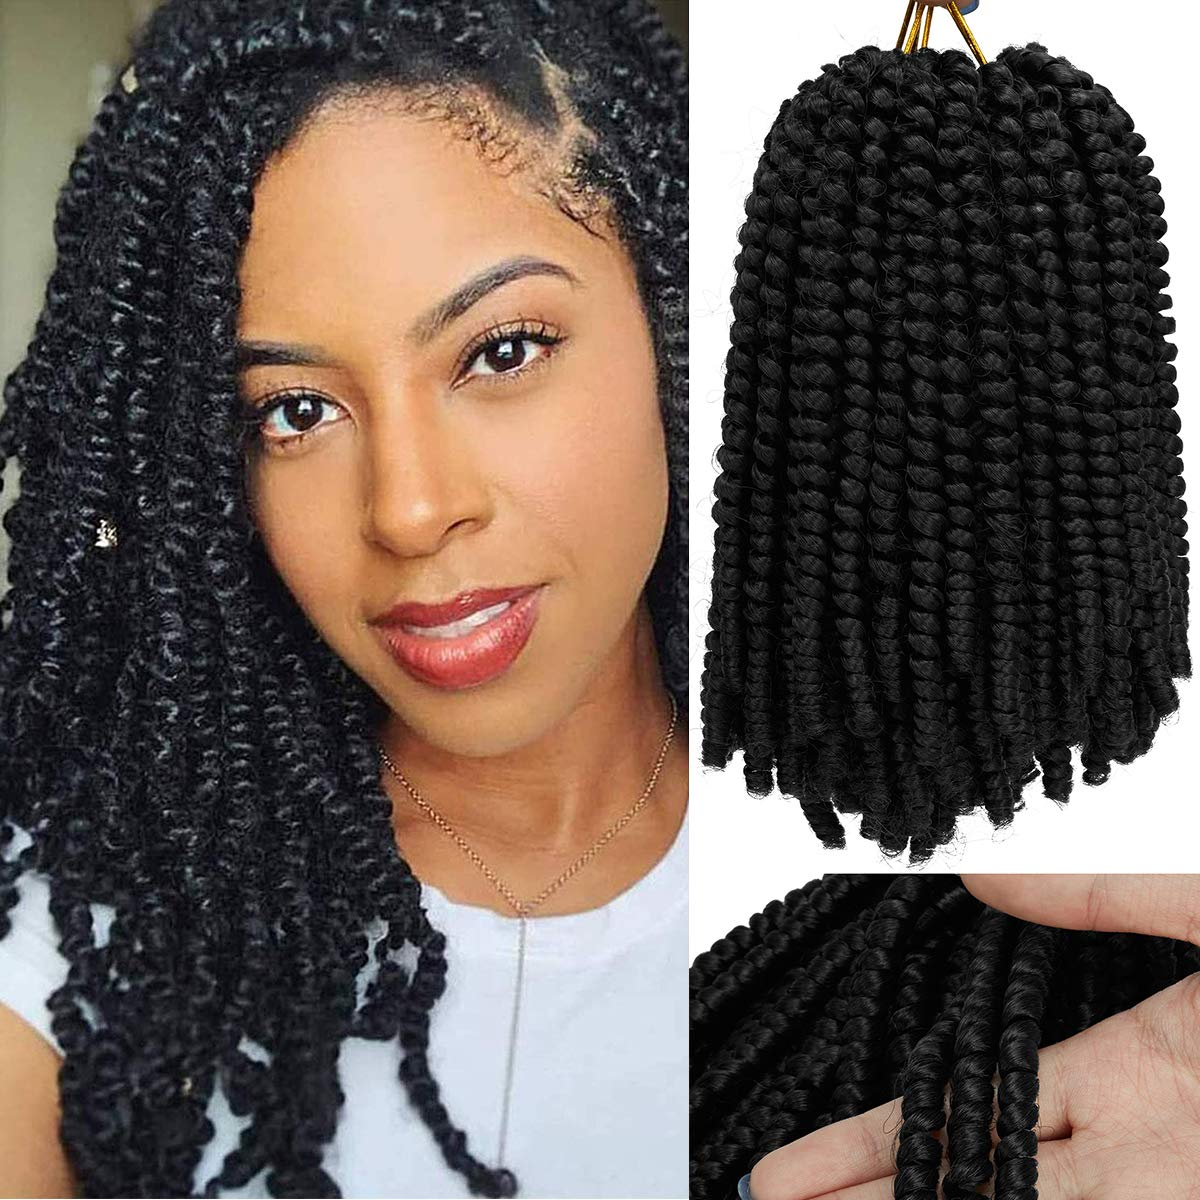 3 Clearance SALE! Limited time! Pack Spring Twist Crochet Braiding 8 Store Croc Inch Hair Bomb